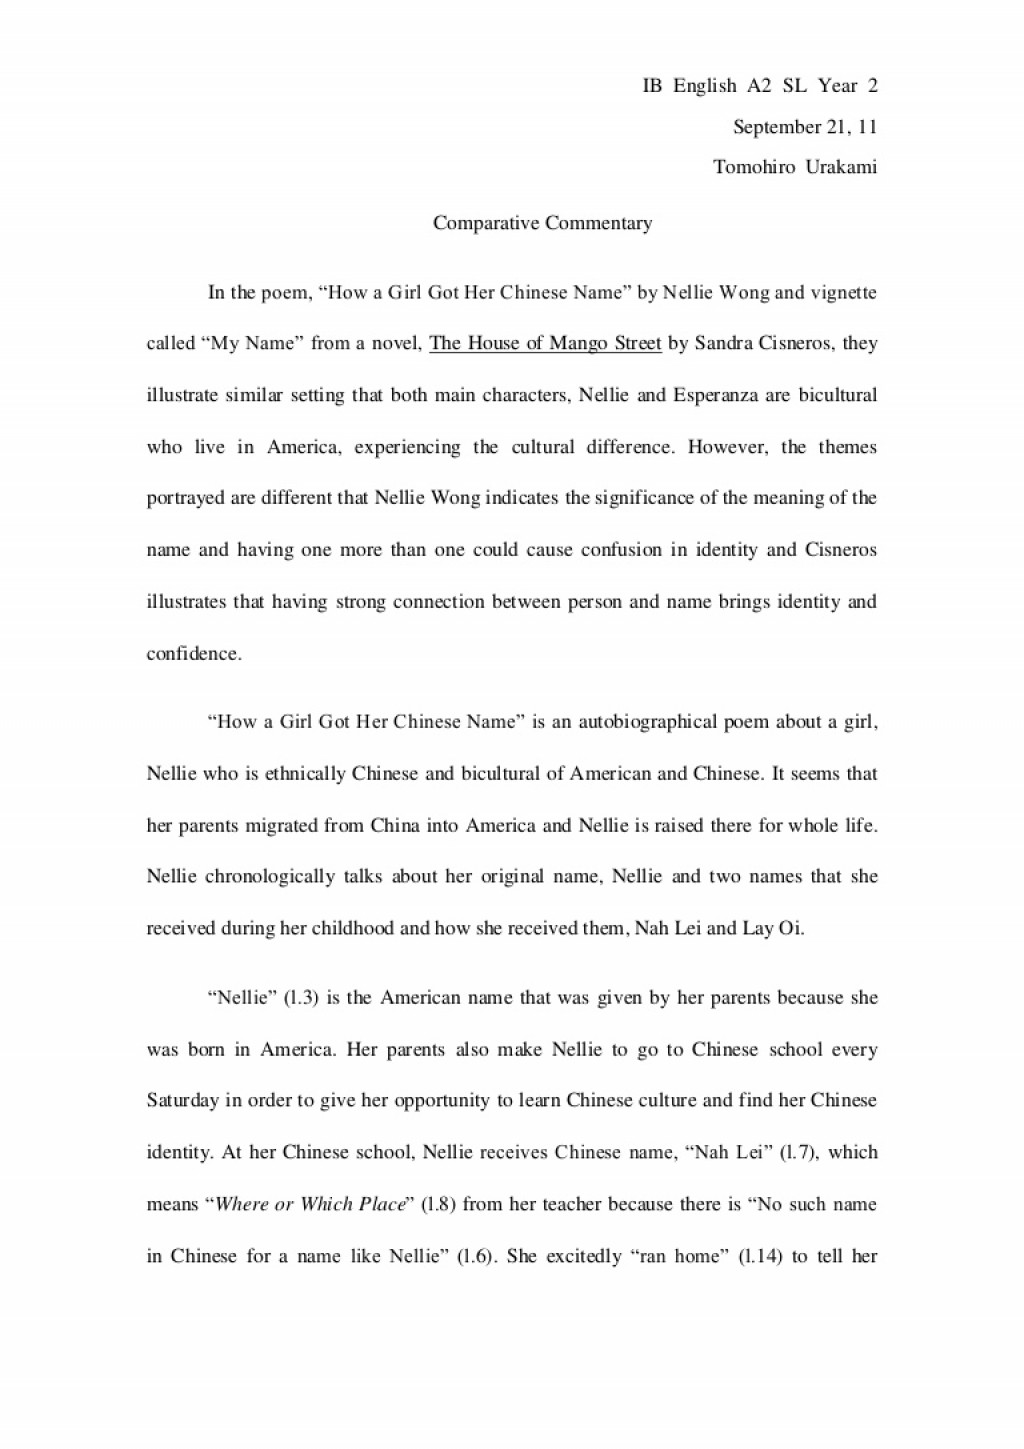 009 Essay Example How To Start Comparative Comparativeessaydraft Phpapp02 Thumbnail Beautiful A Writing Comparison And Contrast Begin Compare Thesis Large